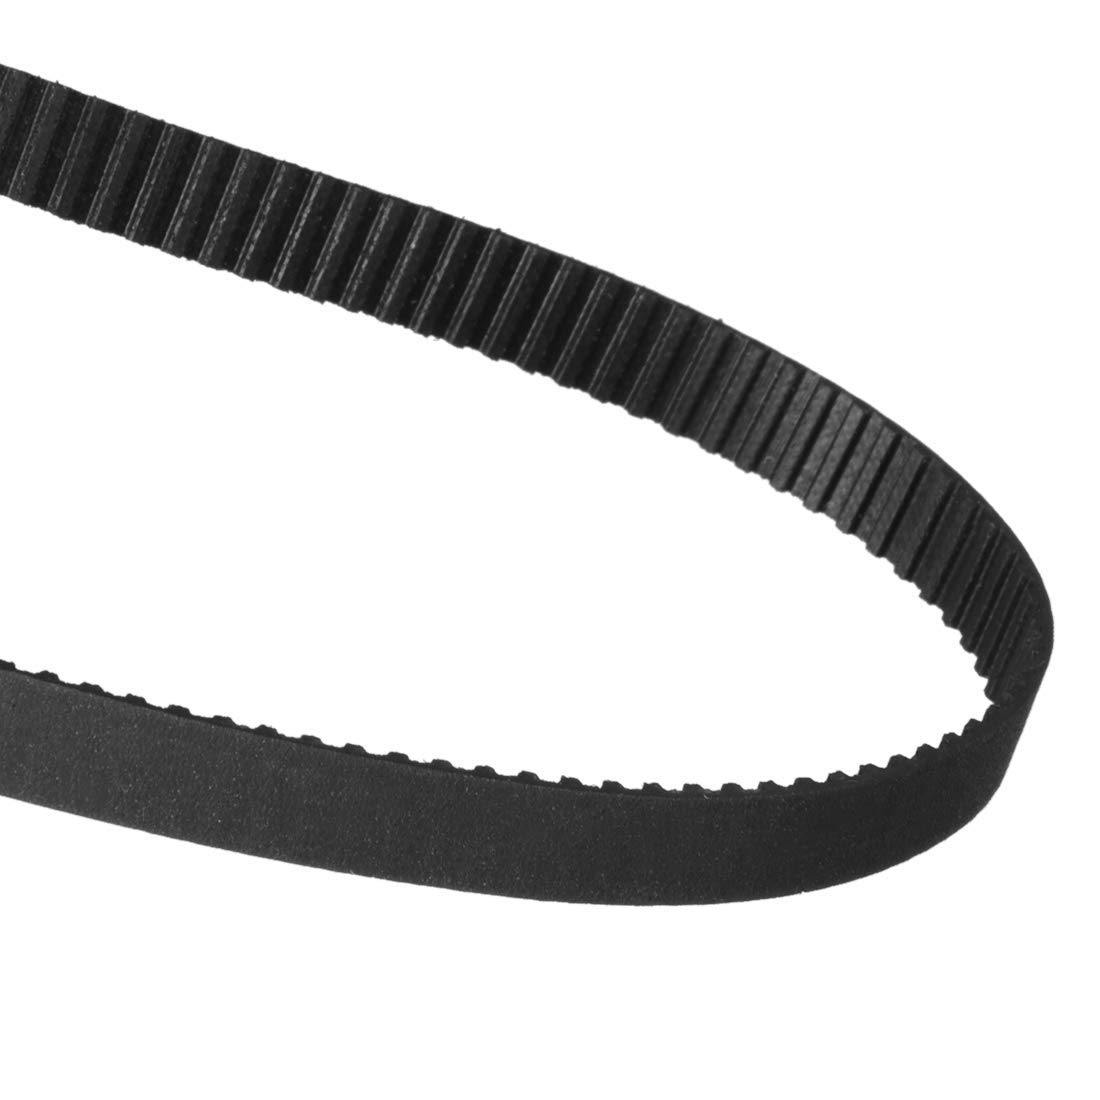 uxcell 350XL Rubber Timing Belt Synchronous Closed Loop Timing Belt Pulleys 10mm Width